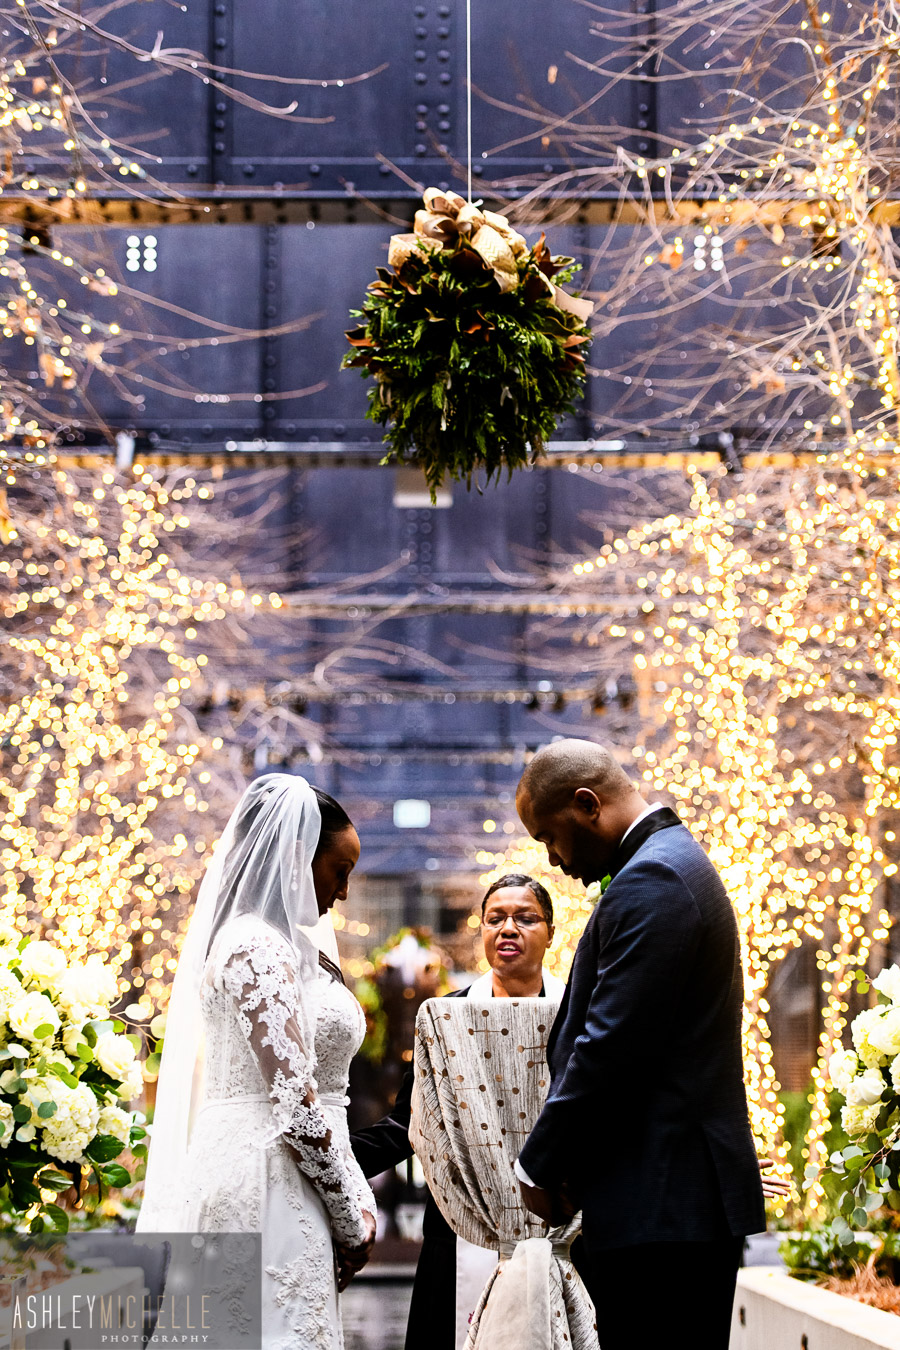 Khadijah + Randall on December 28, 2018 ♥ Ashley Michelle Photography at Sagamore Pendry (Baltimore, MD)